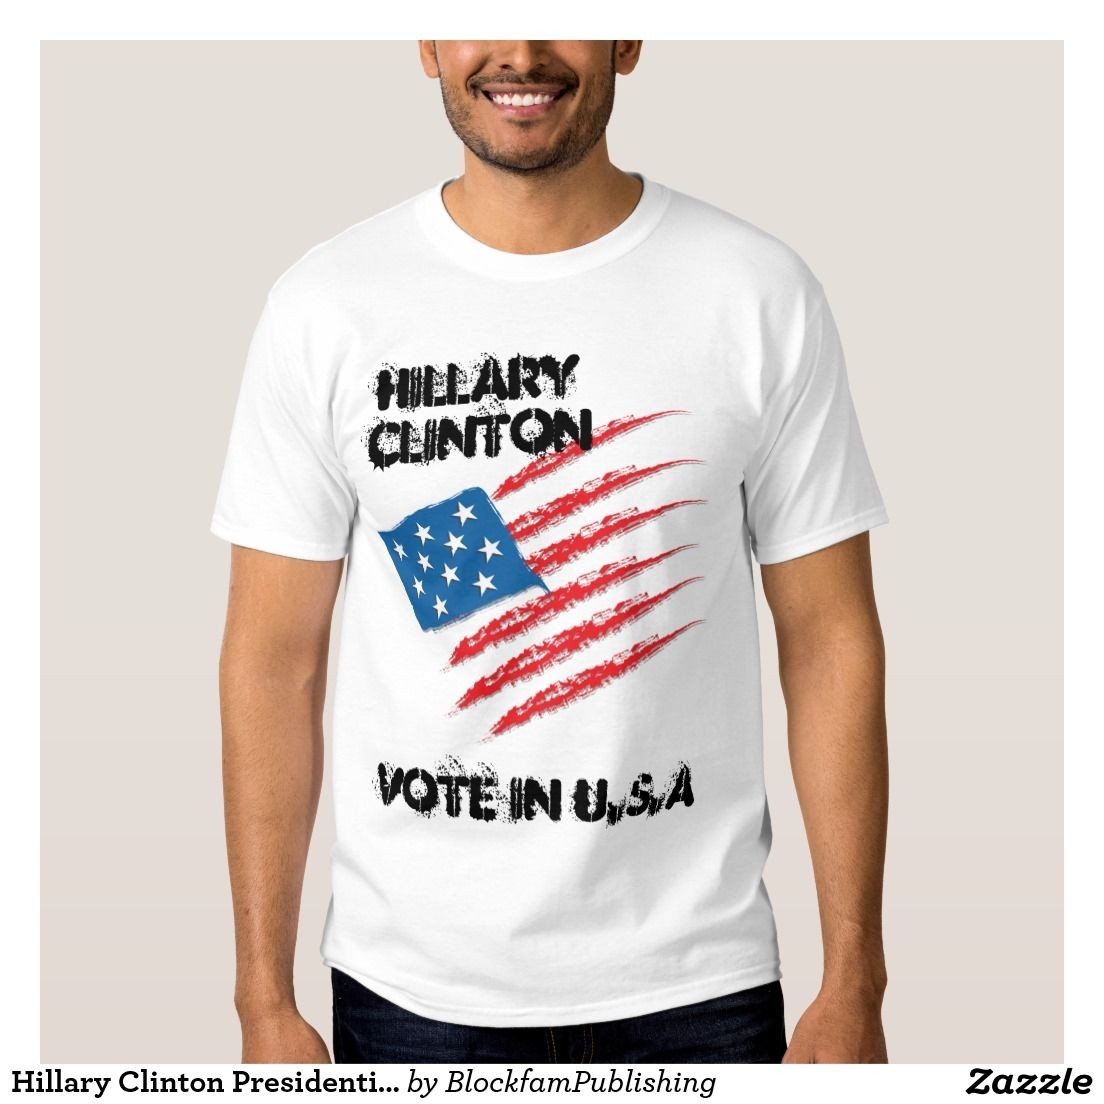 59a94d957b Hip Hop Urban Style Mens Cotton Vote For Hillary Clinton for President 2016  White T-Shirt. (New) (Fashion)